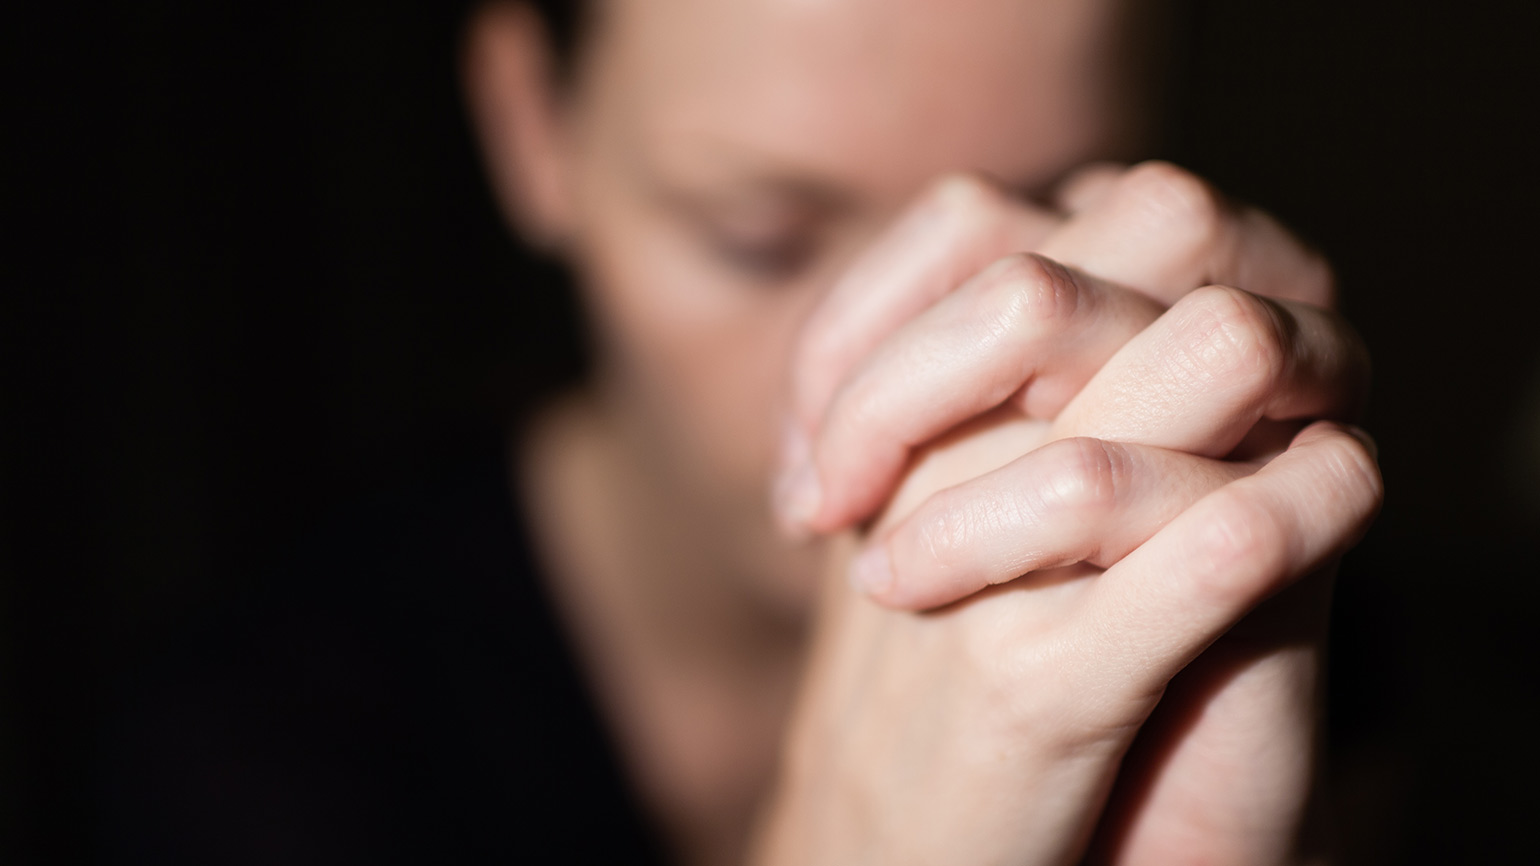 A woman clasps her hands in prayer